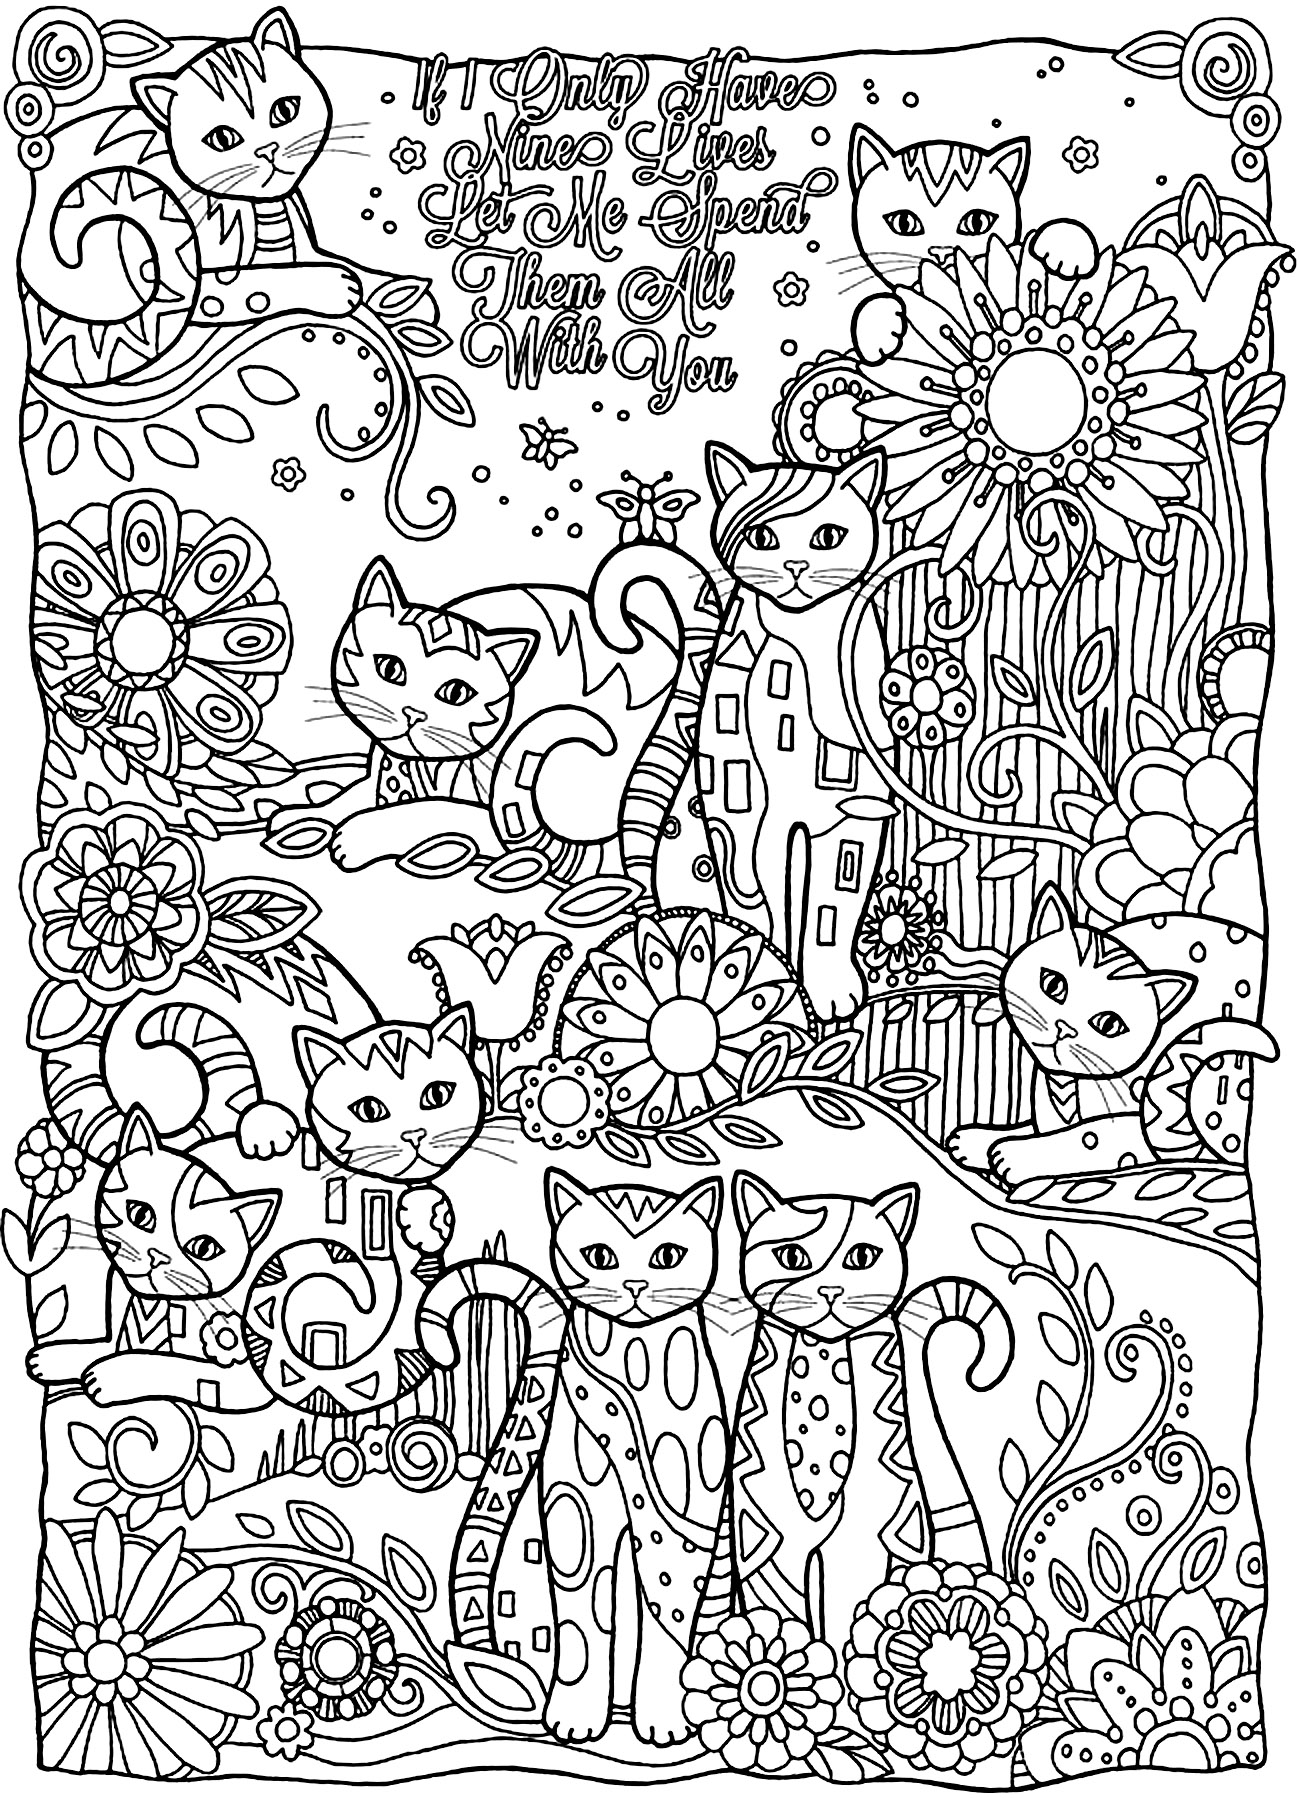 Simple cats coloring page for children